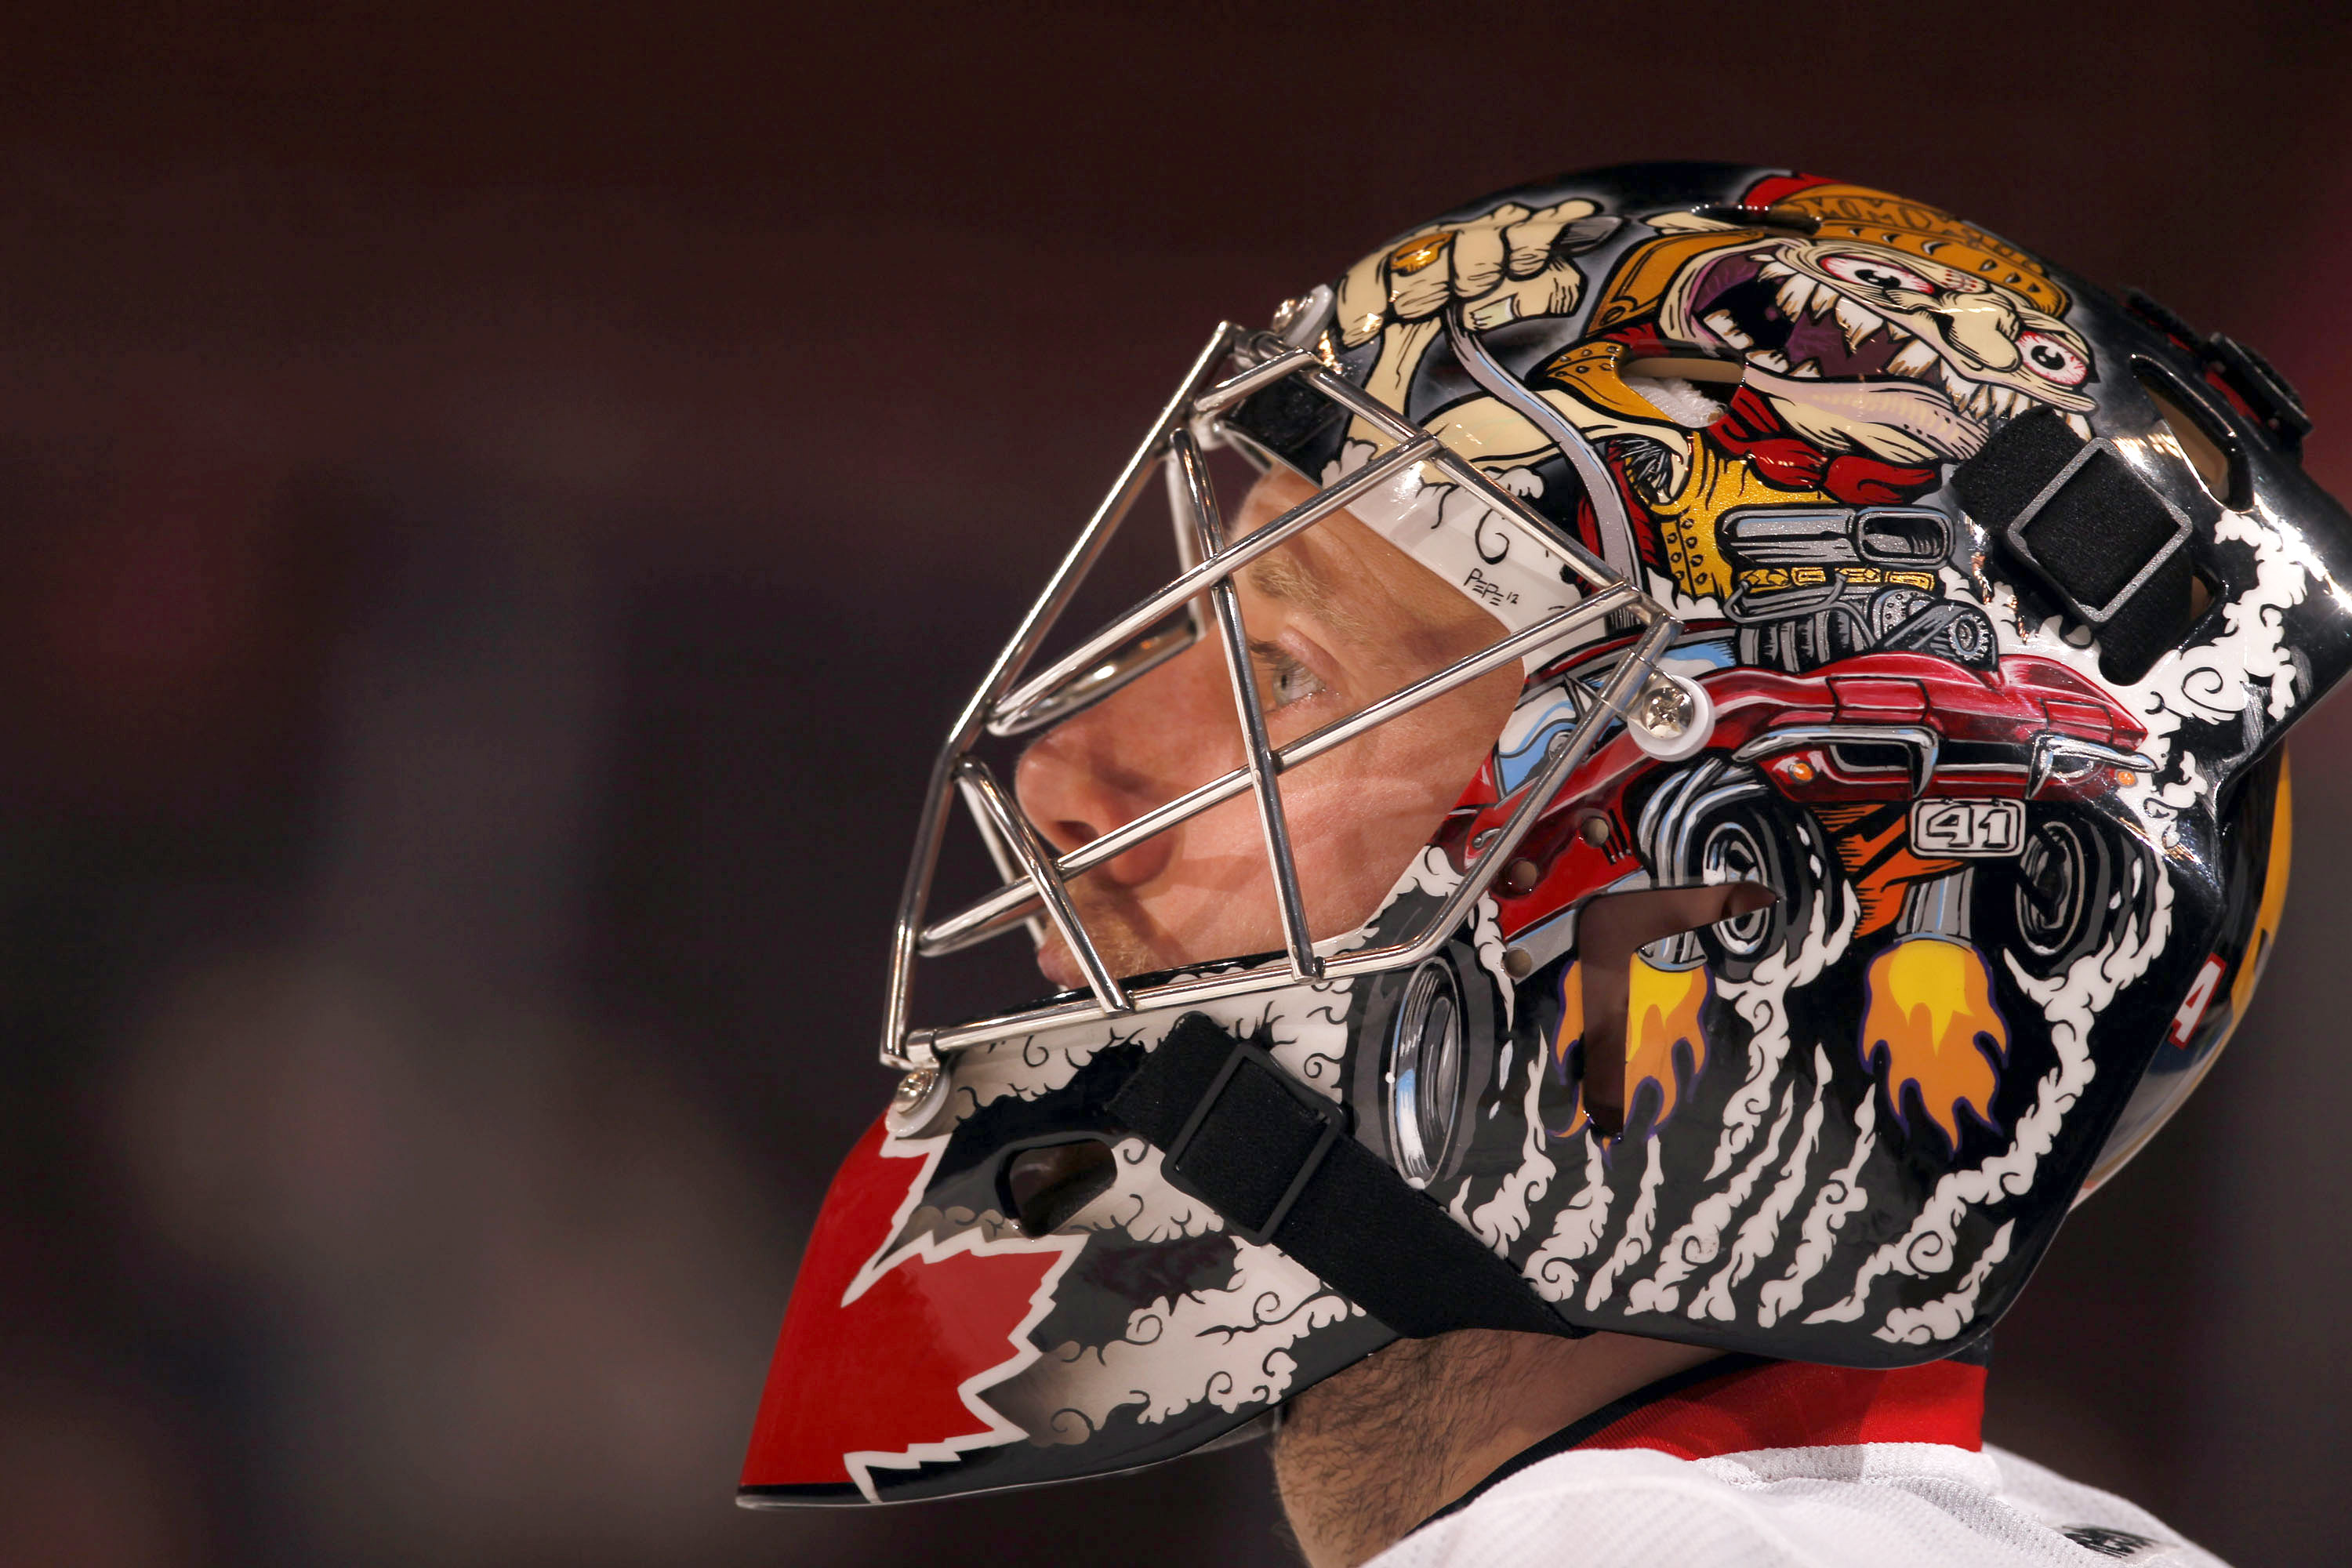 Ben Bishop Ottawa Senators Full HD Wallpaper And